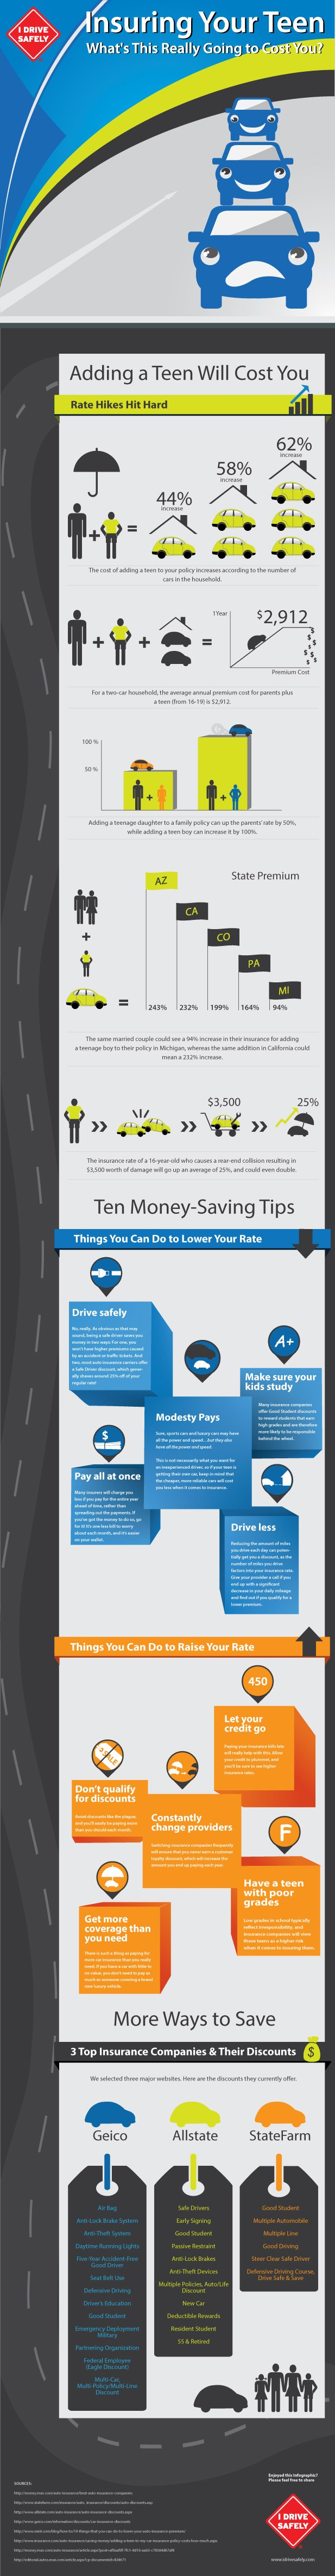 teen car insurance and teen driving infographic